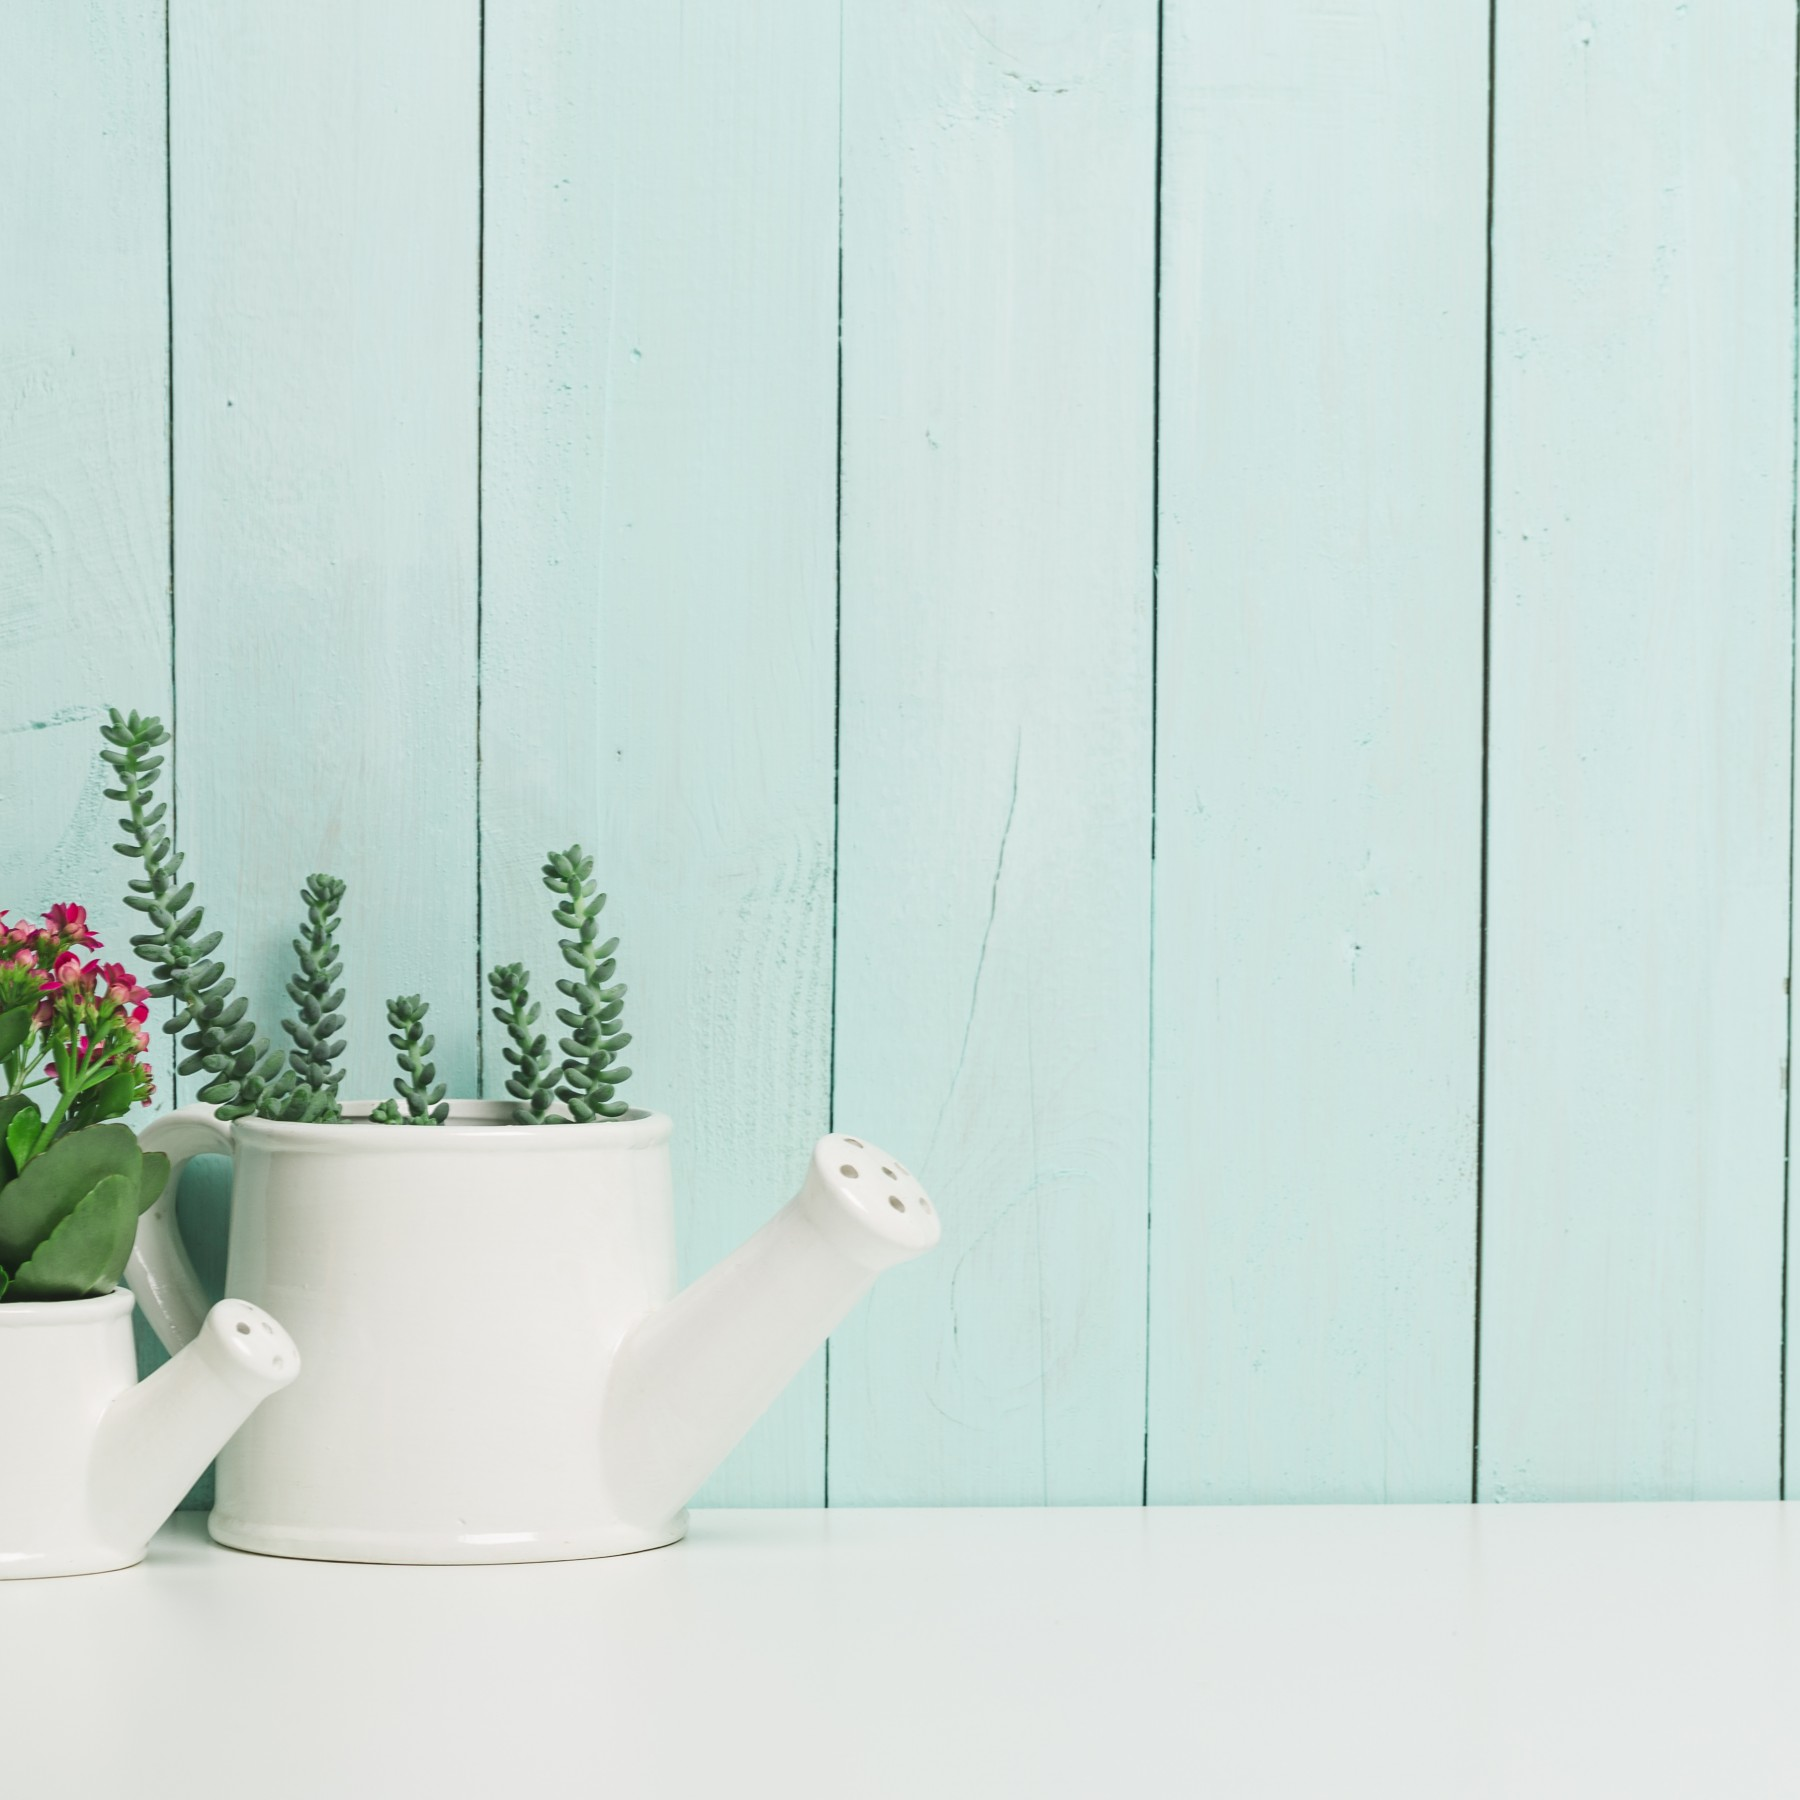 The Benefits of Having Plants in your Home